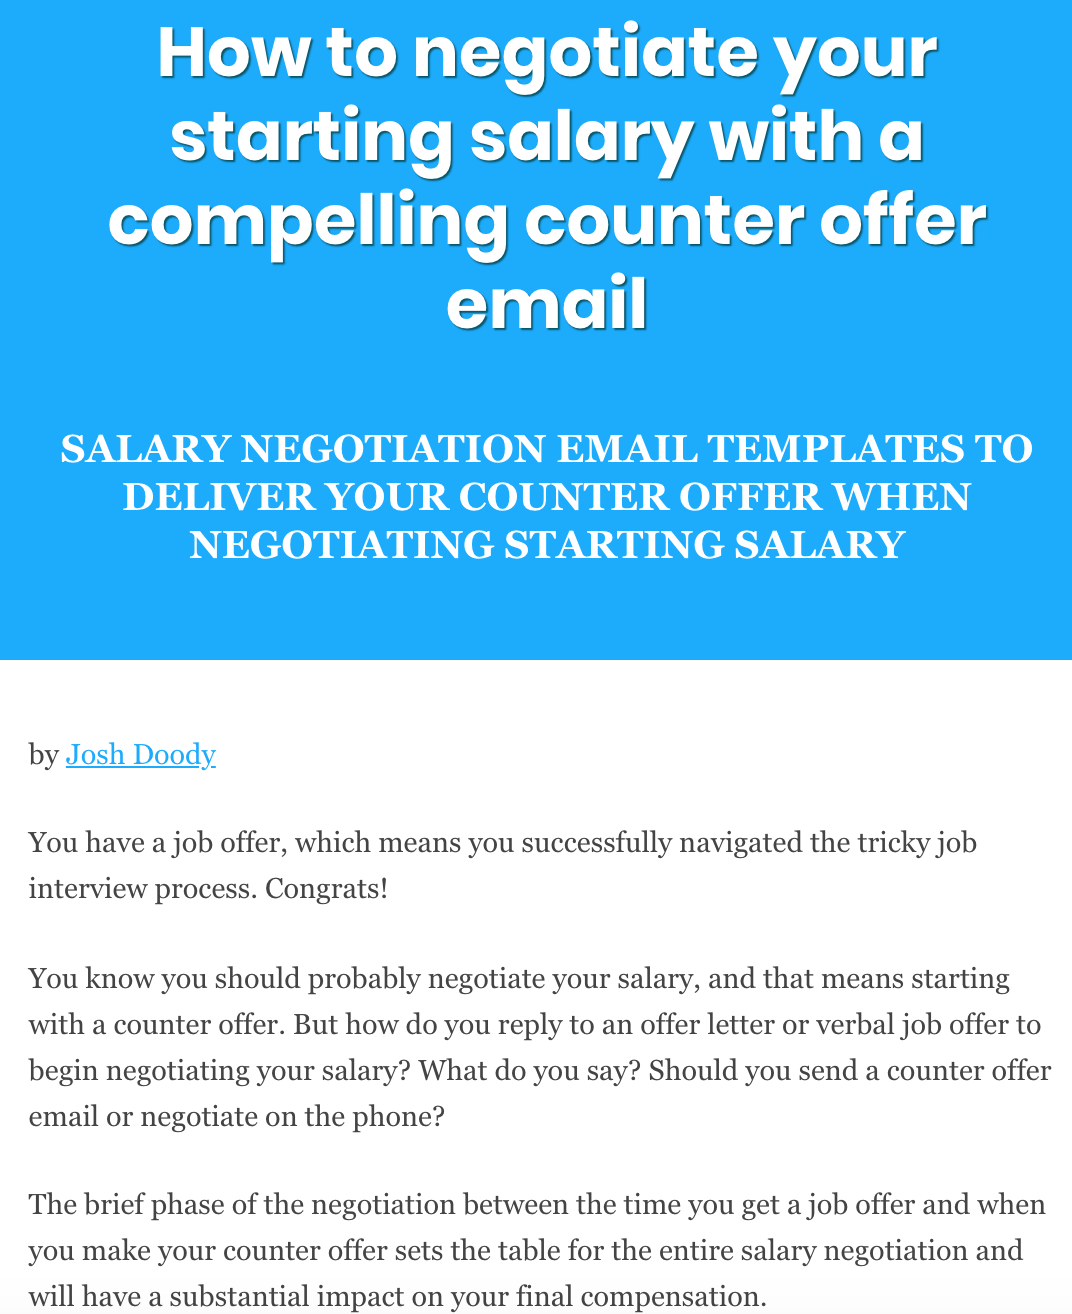 How To Negotiate Your Starting Salary With A Compelling Counter Offer Email Negotiating Salary Salary Negotiation Letter Job Letter